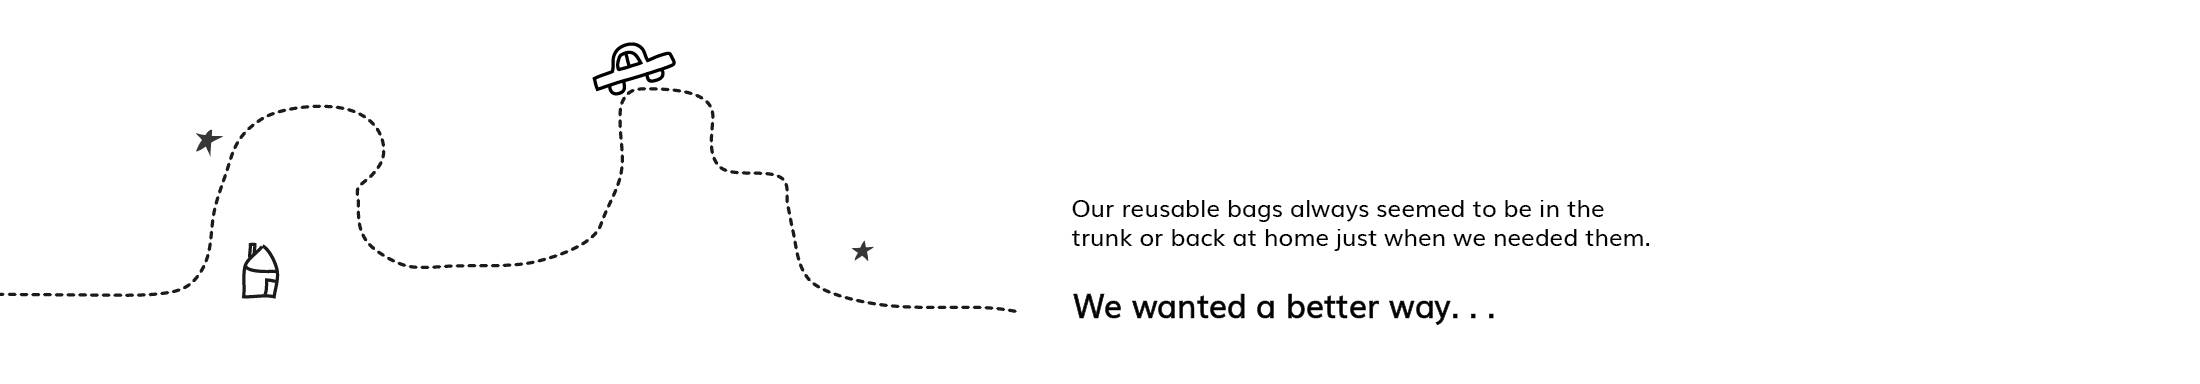 reusable bags were always in the trunk or back at home when we needed them.  We wanted a better way.